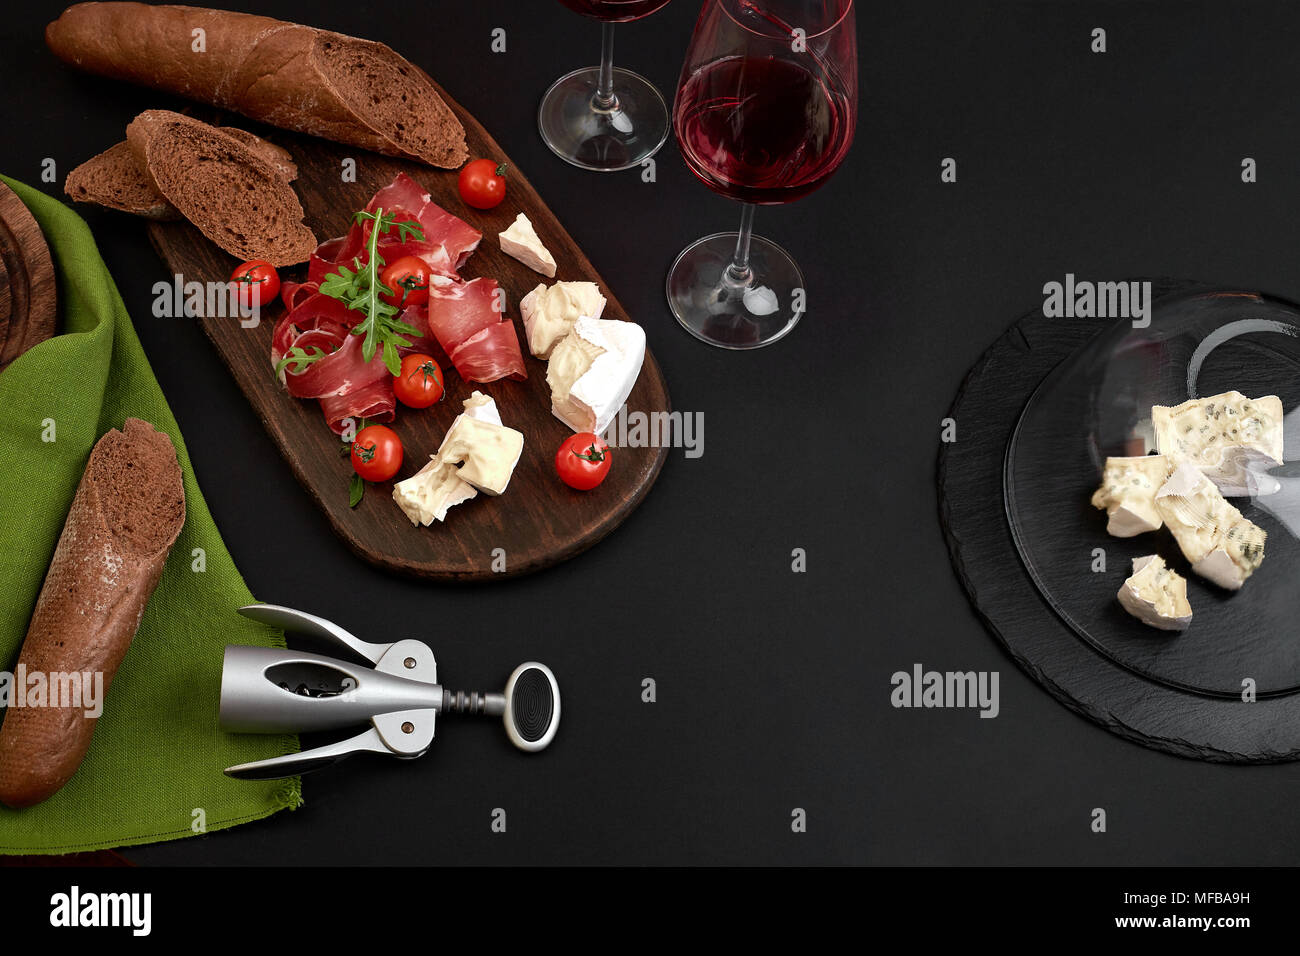 Prosciutto, salami, baguette slices, tomatoes and nutson rustic wooden board, two glasses of red wine over black background Stock Photo